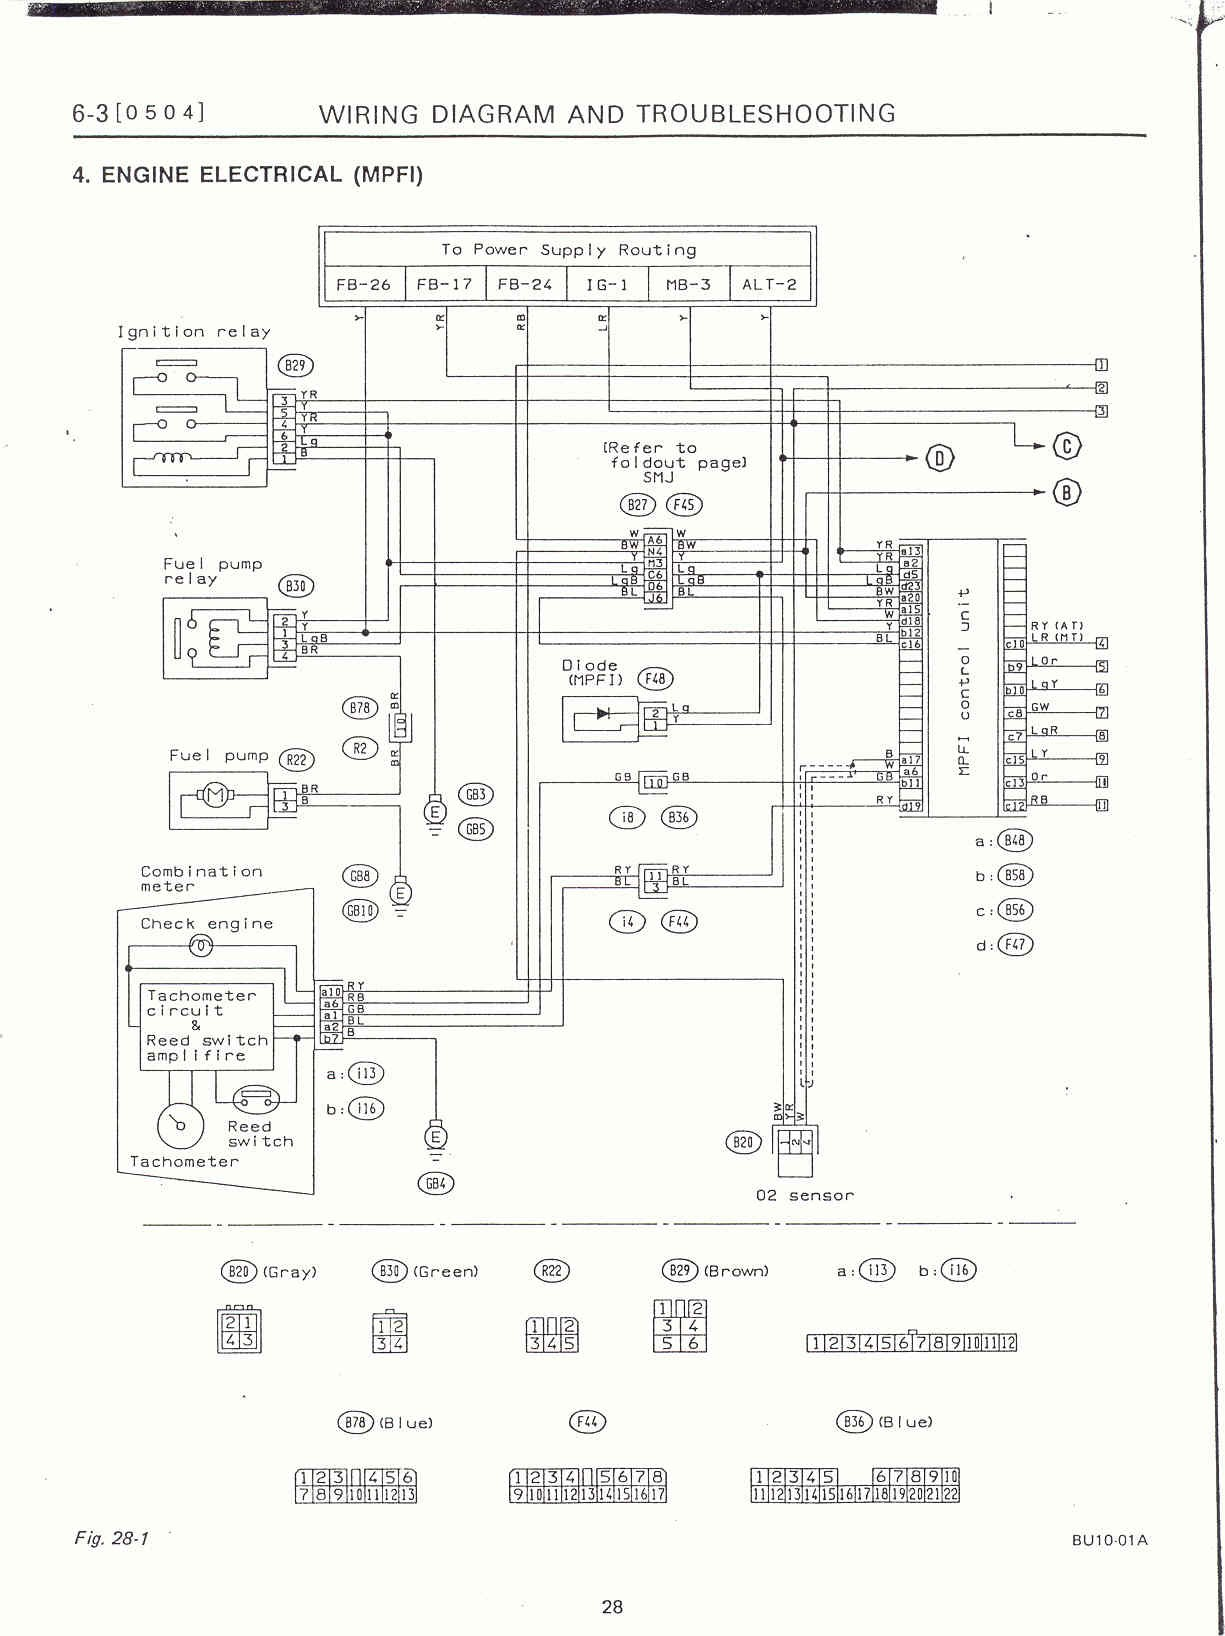 1997 subaru legacy outback radio wiring diagram briggs amp stratton parts 1996 library